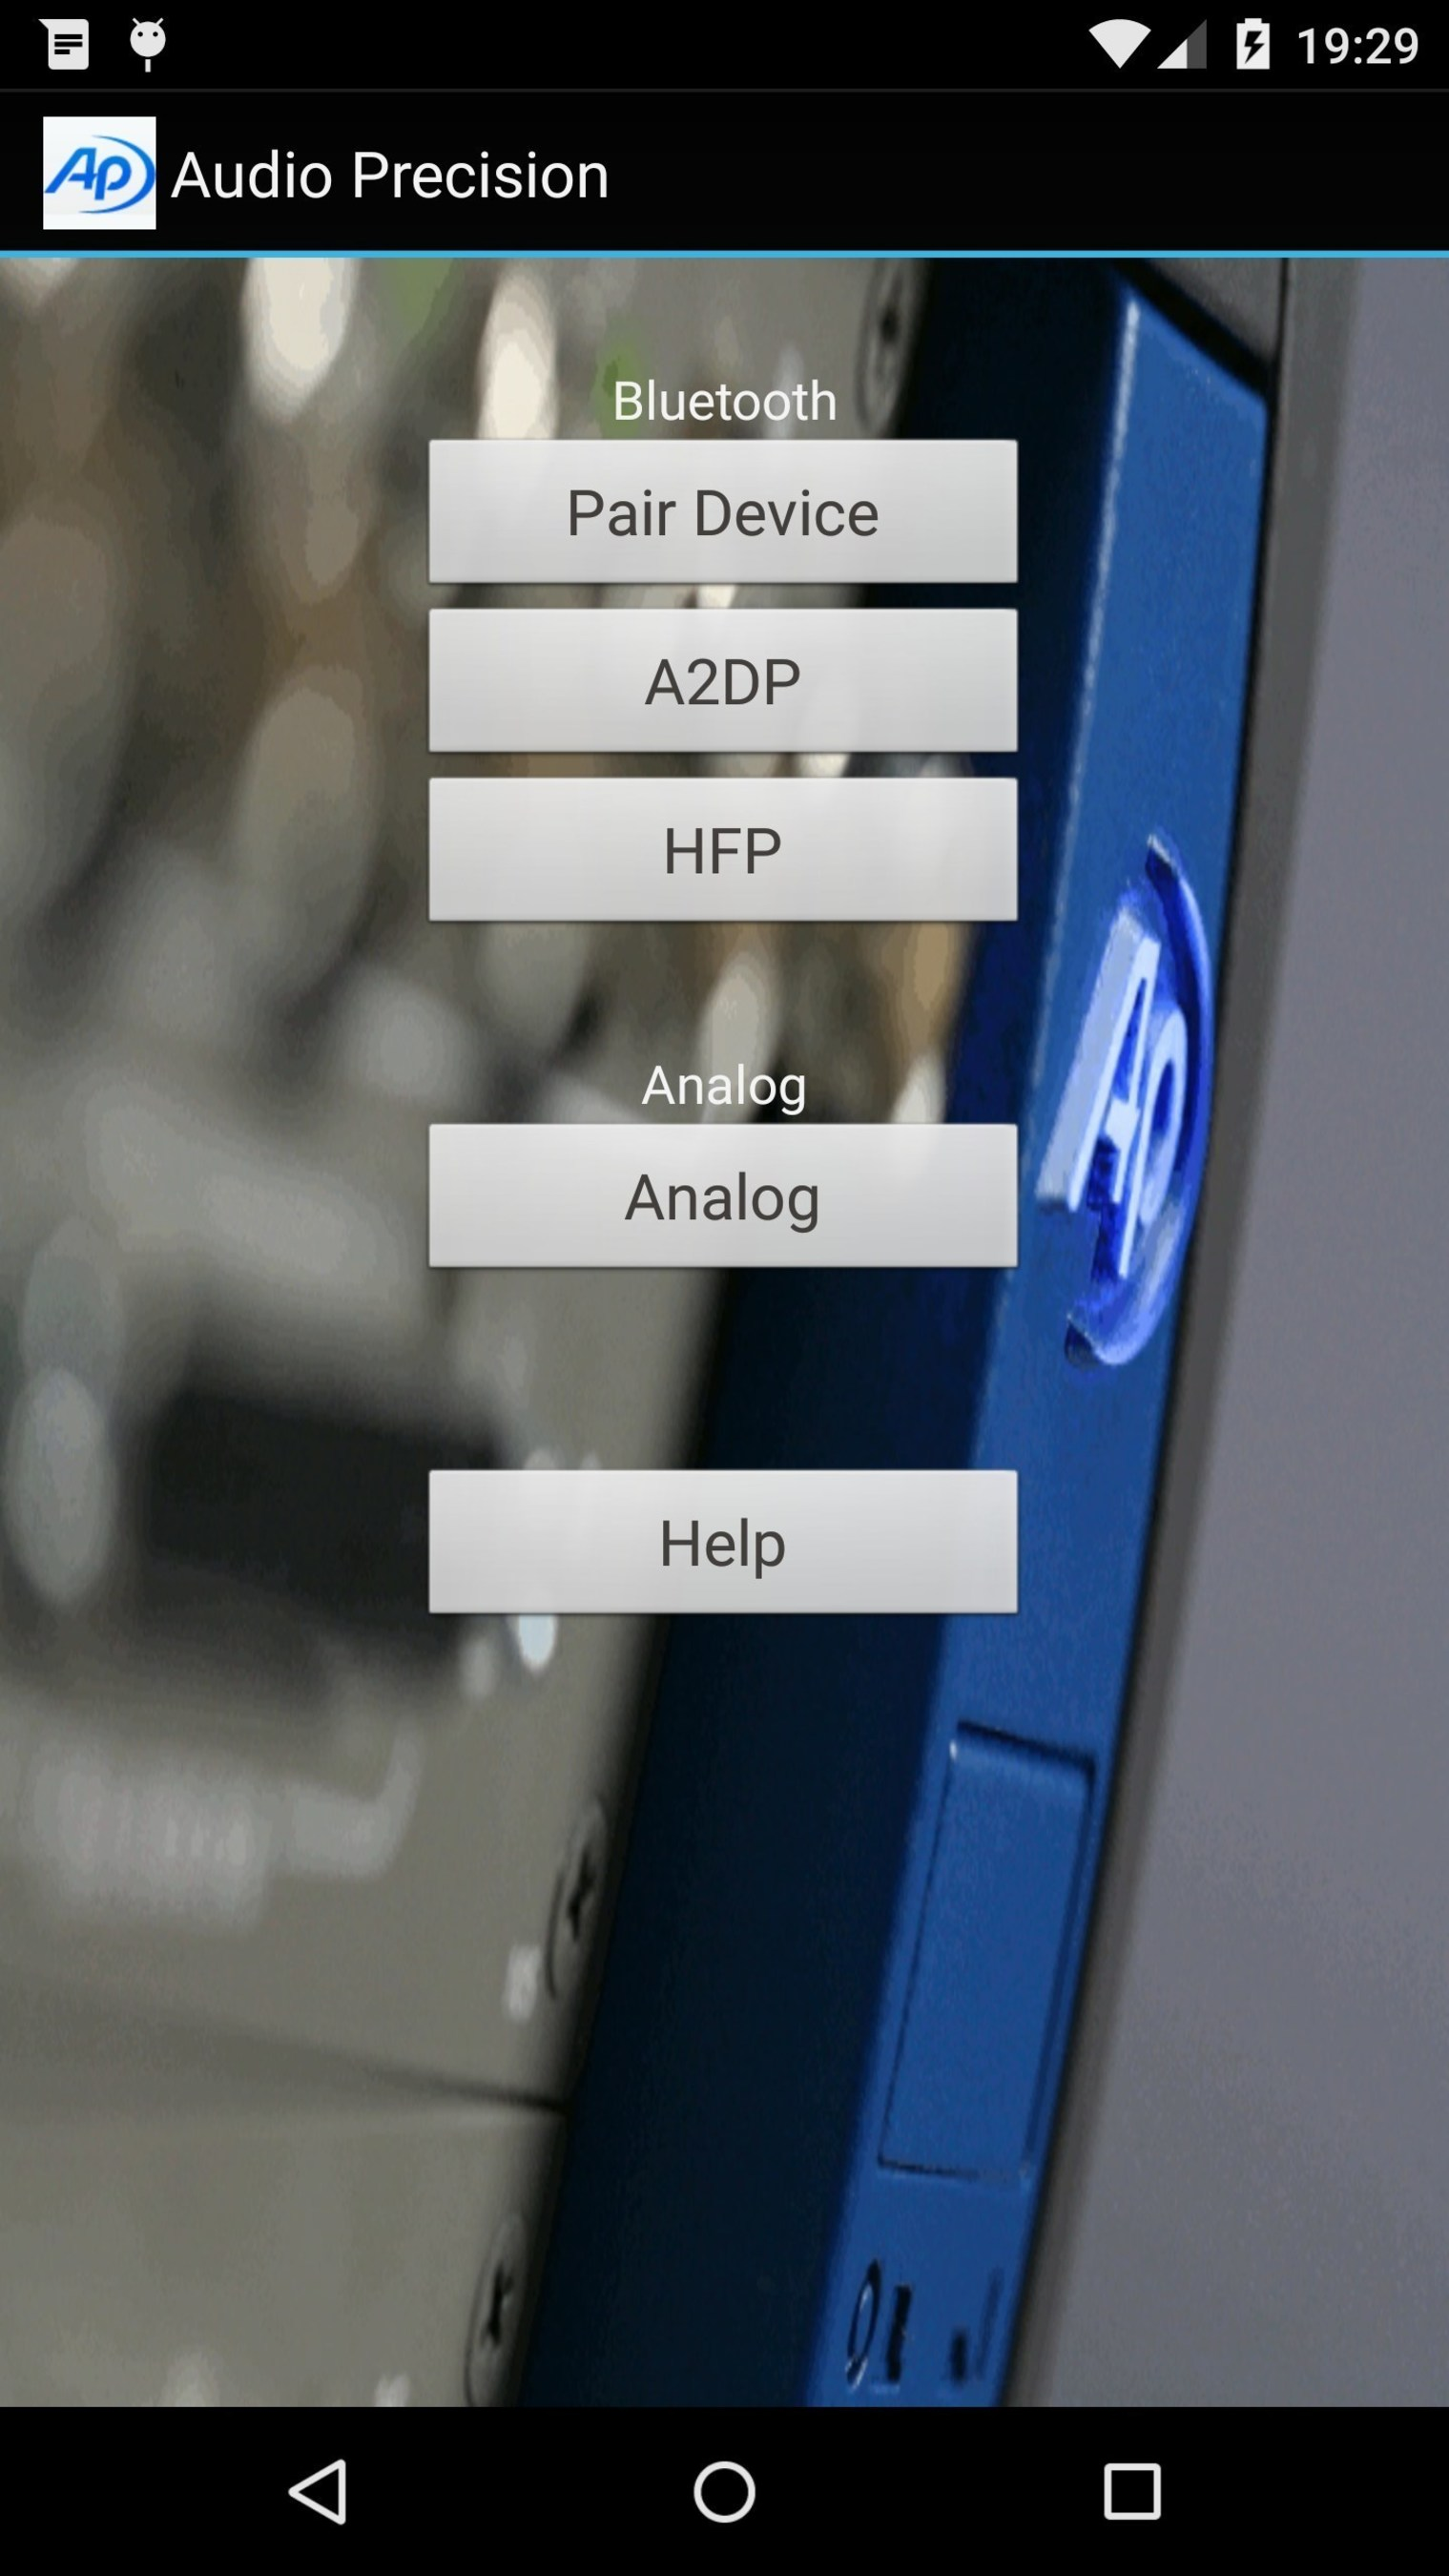 Audio Precision's updated Smartphone Audio Test App for Android.